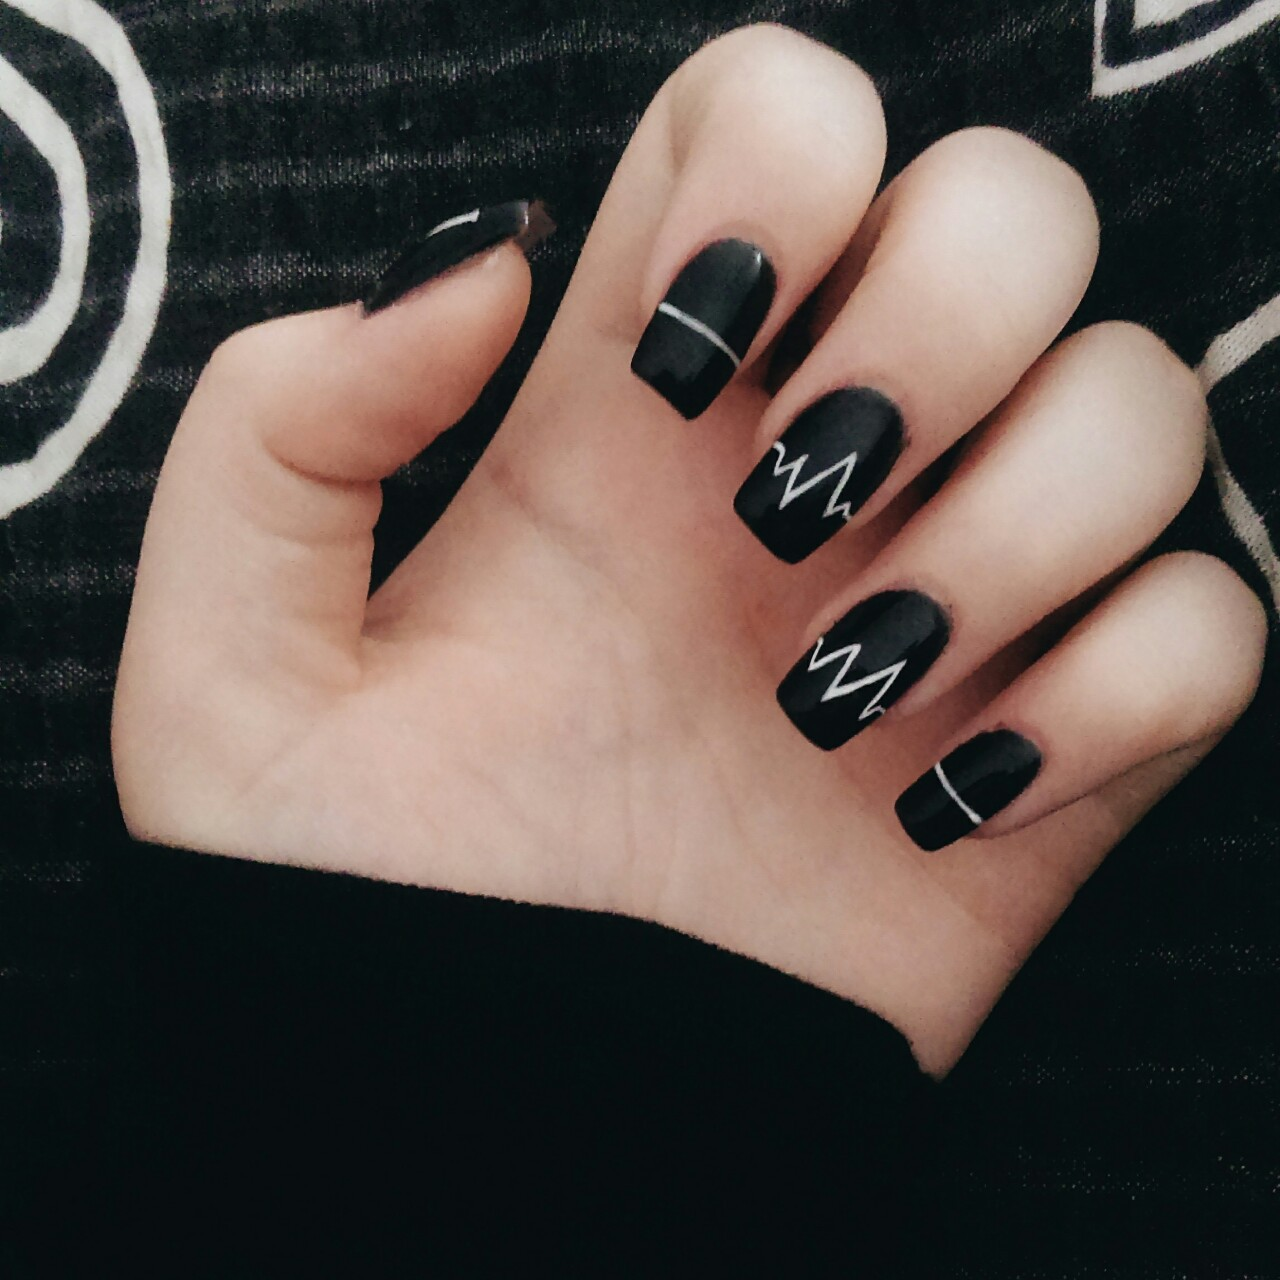 50 Images About Nails On We Heart It